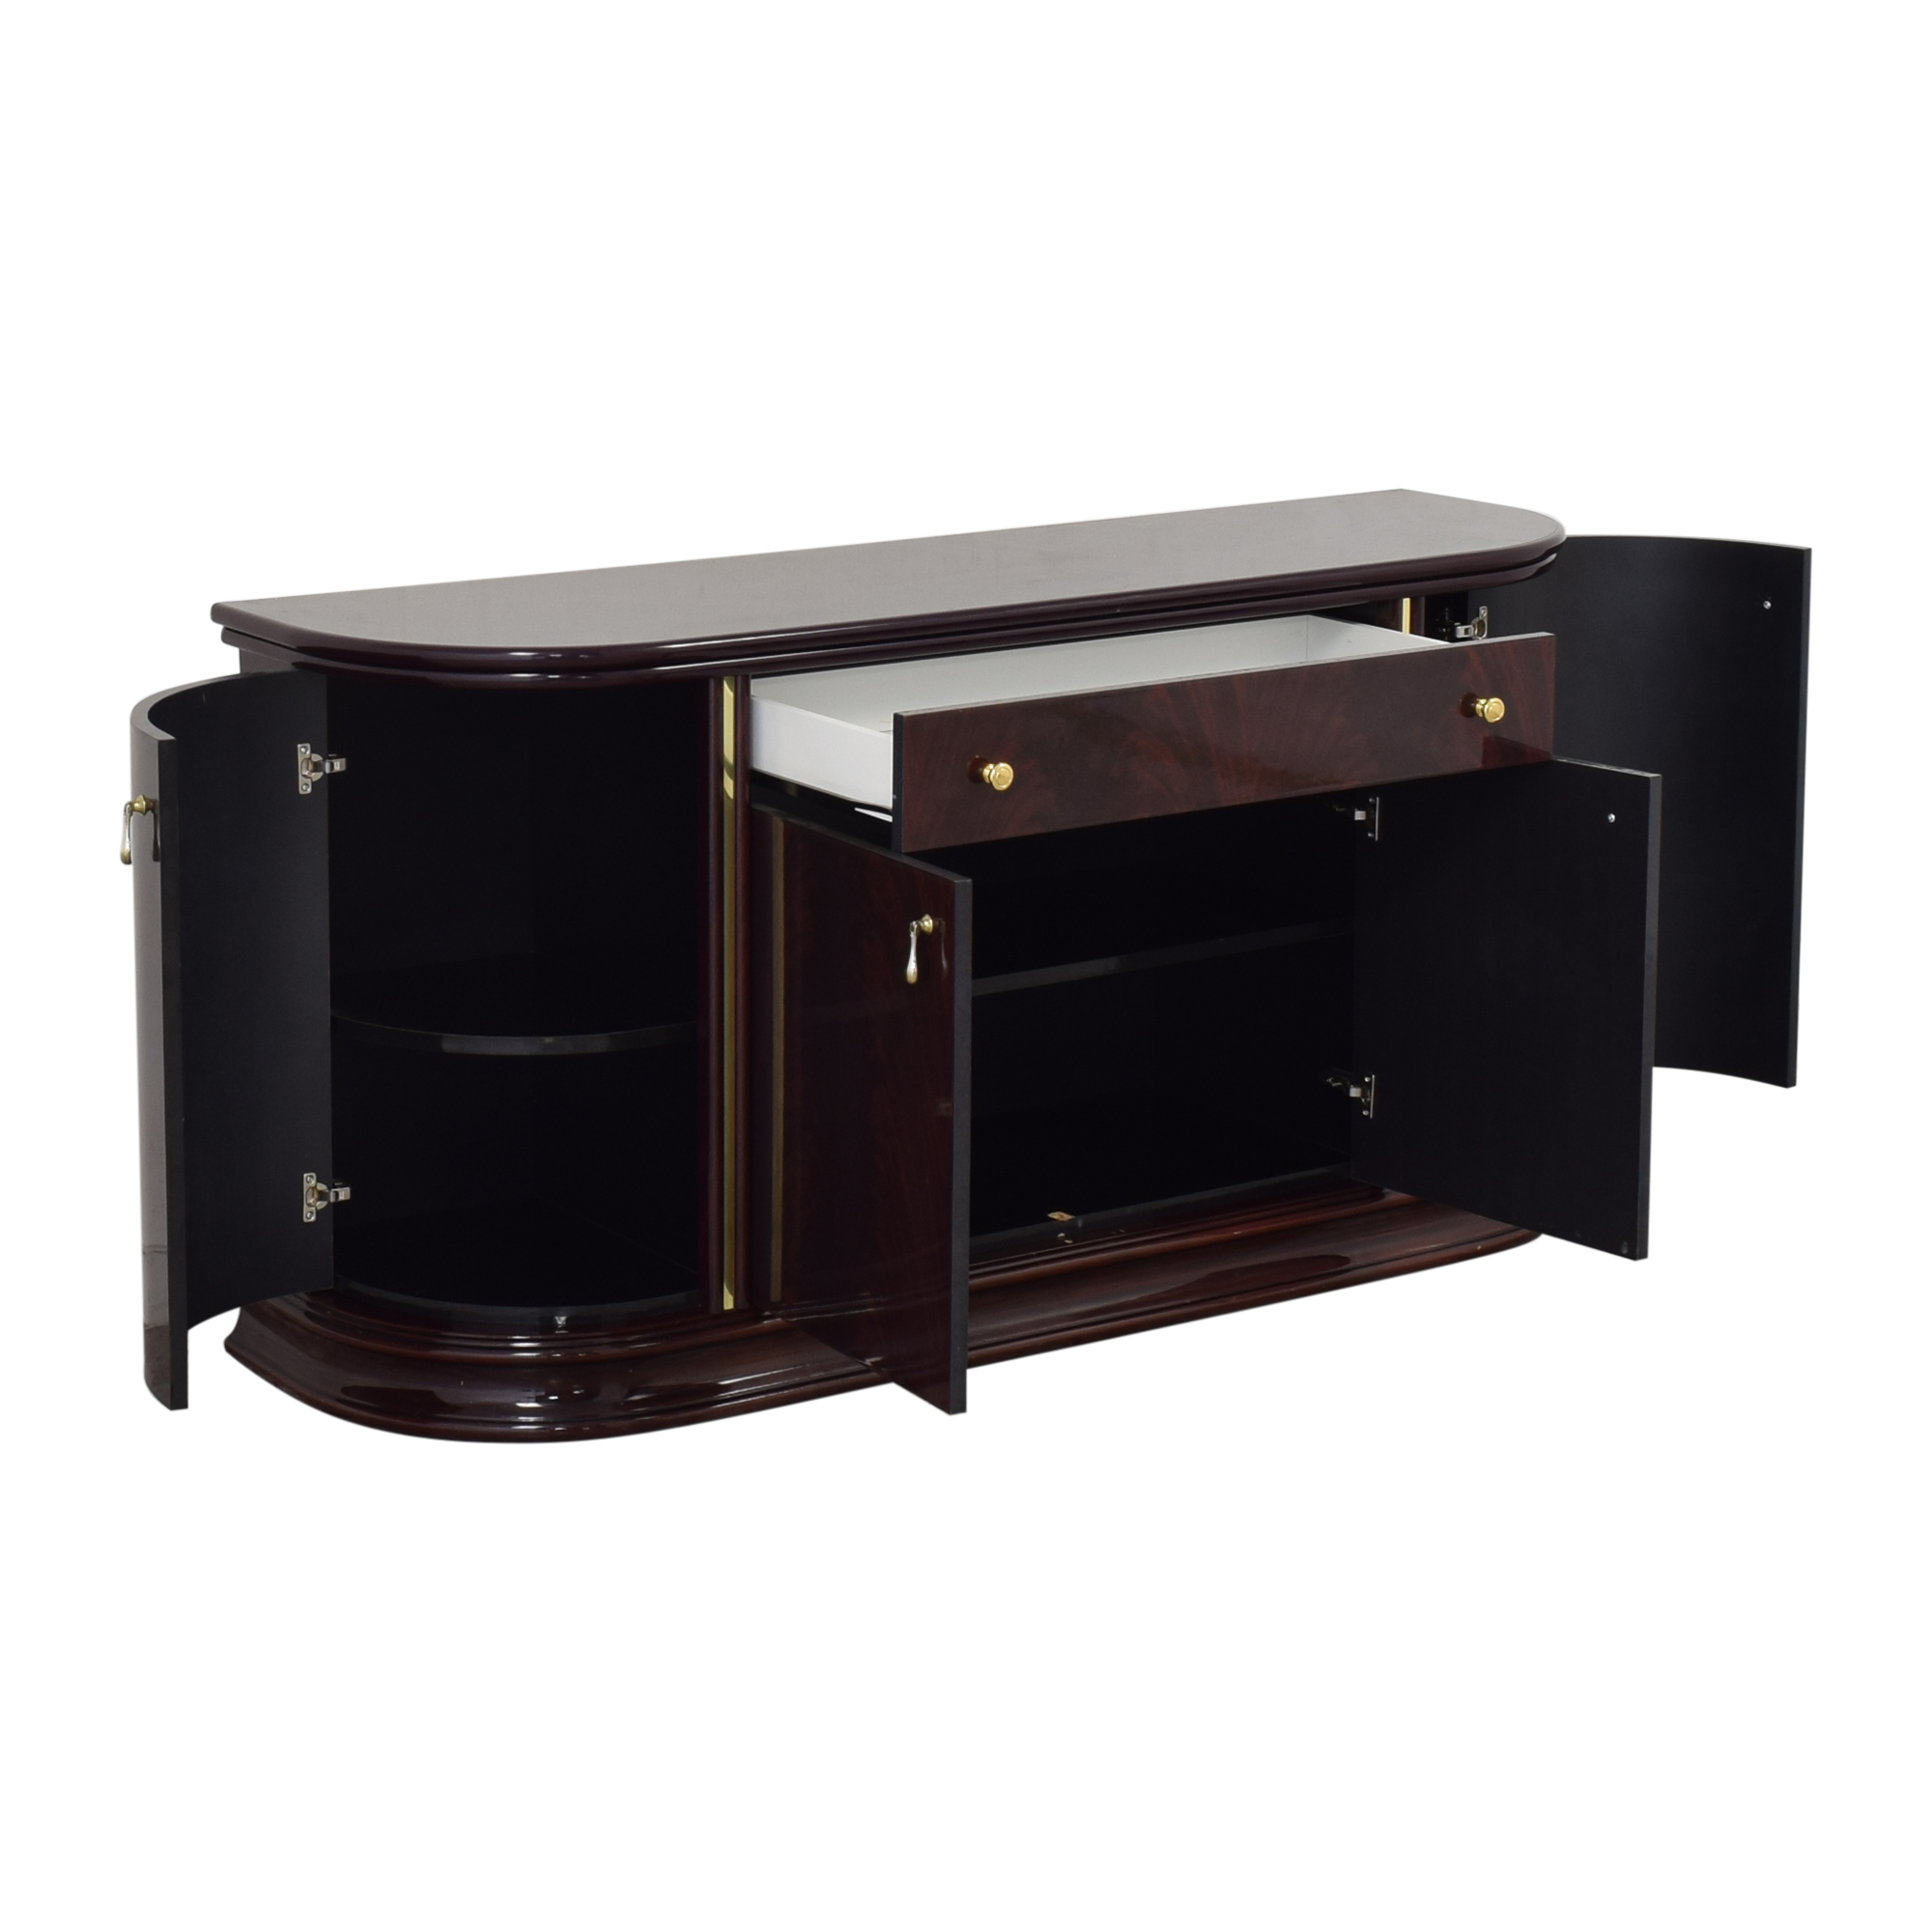 Demilune Sideboard second hand